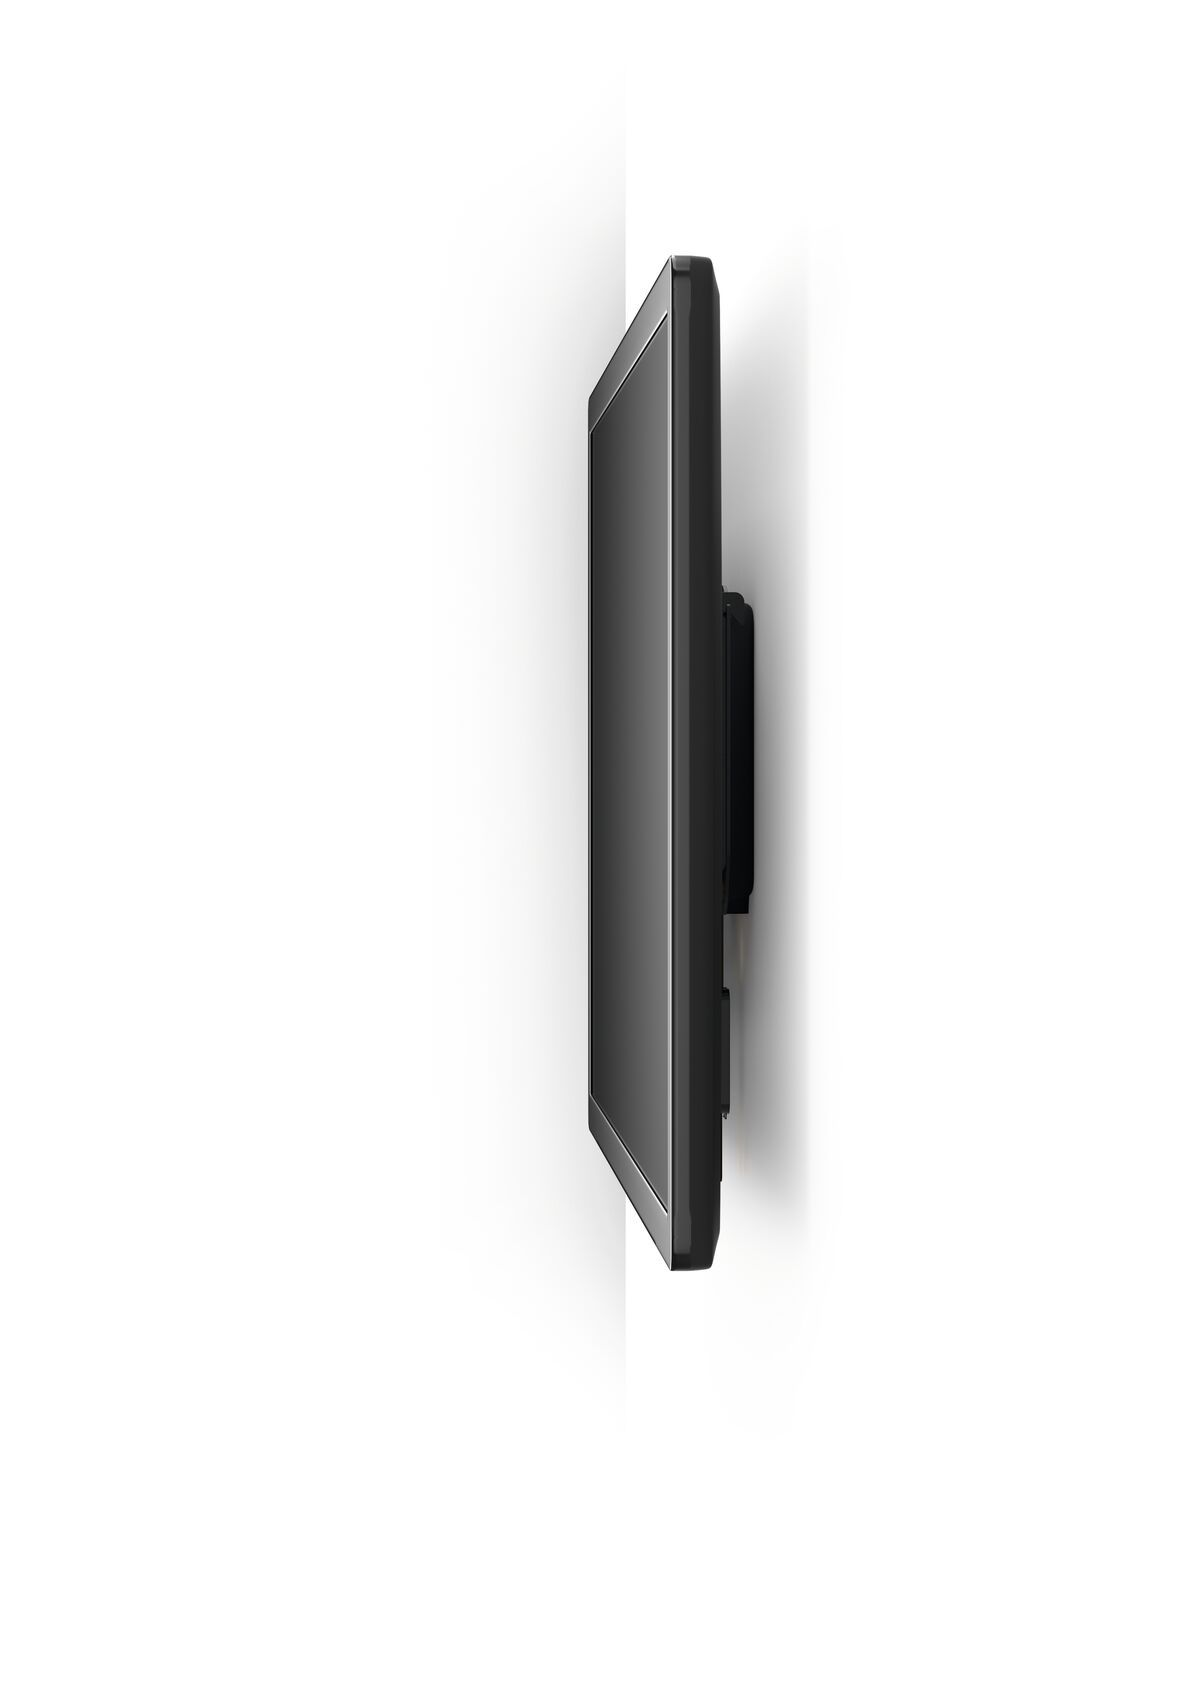 Vogel's WALL 2005 Fixed TV Wall Mount - Suitable for 17 up to 26 inch TVs up to kg - White wall